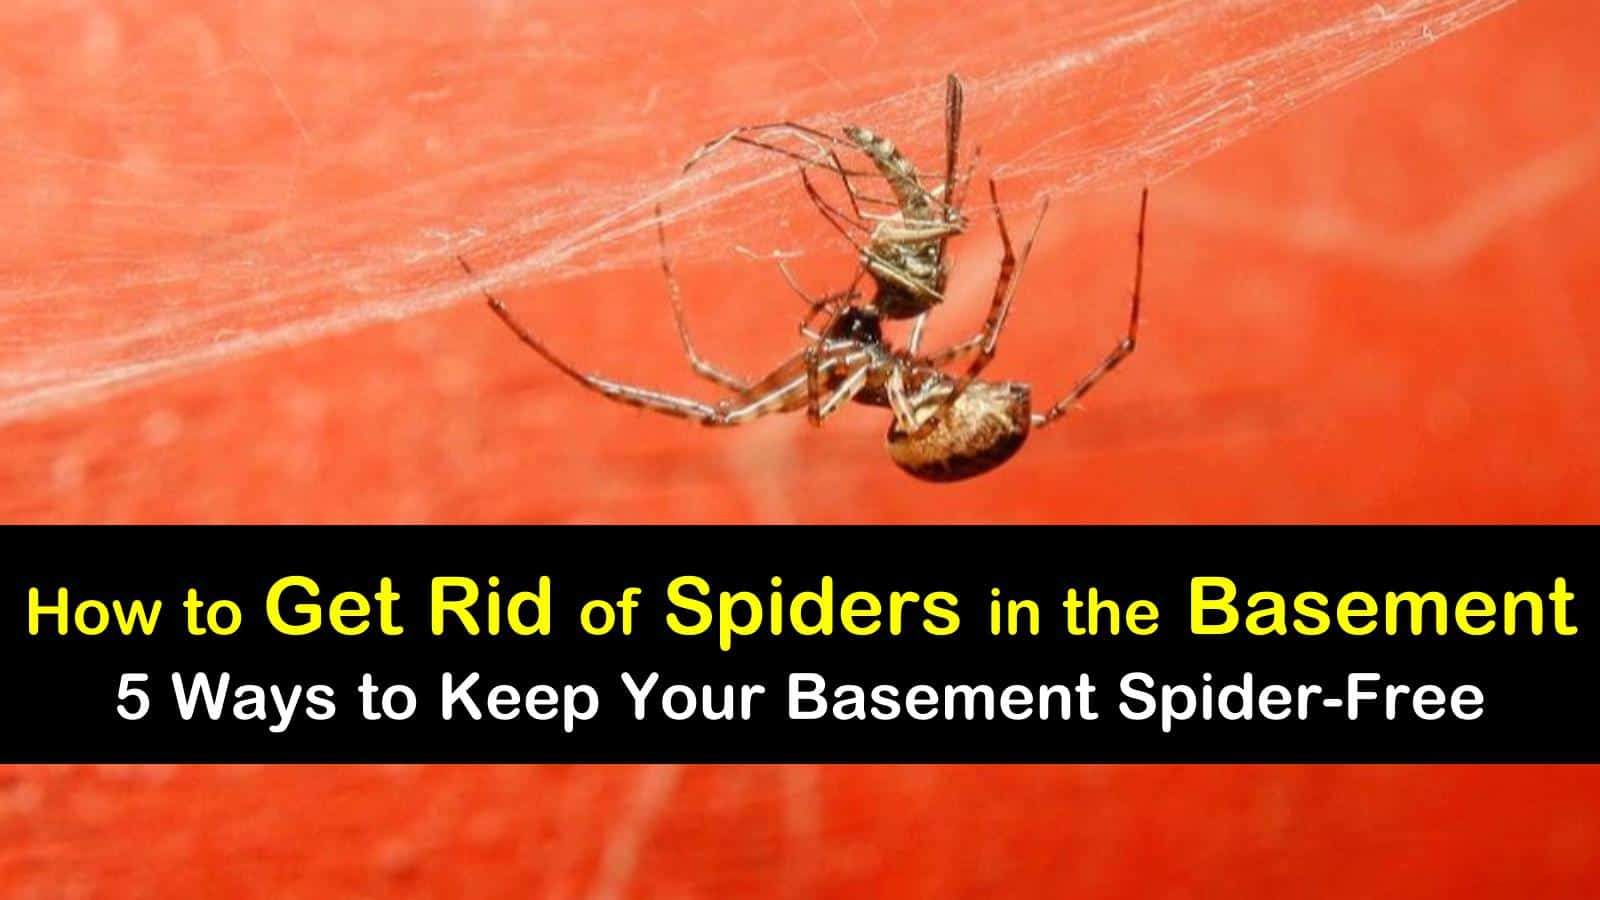 how to get rid of spiders in the basement titleimg1